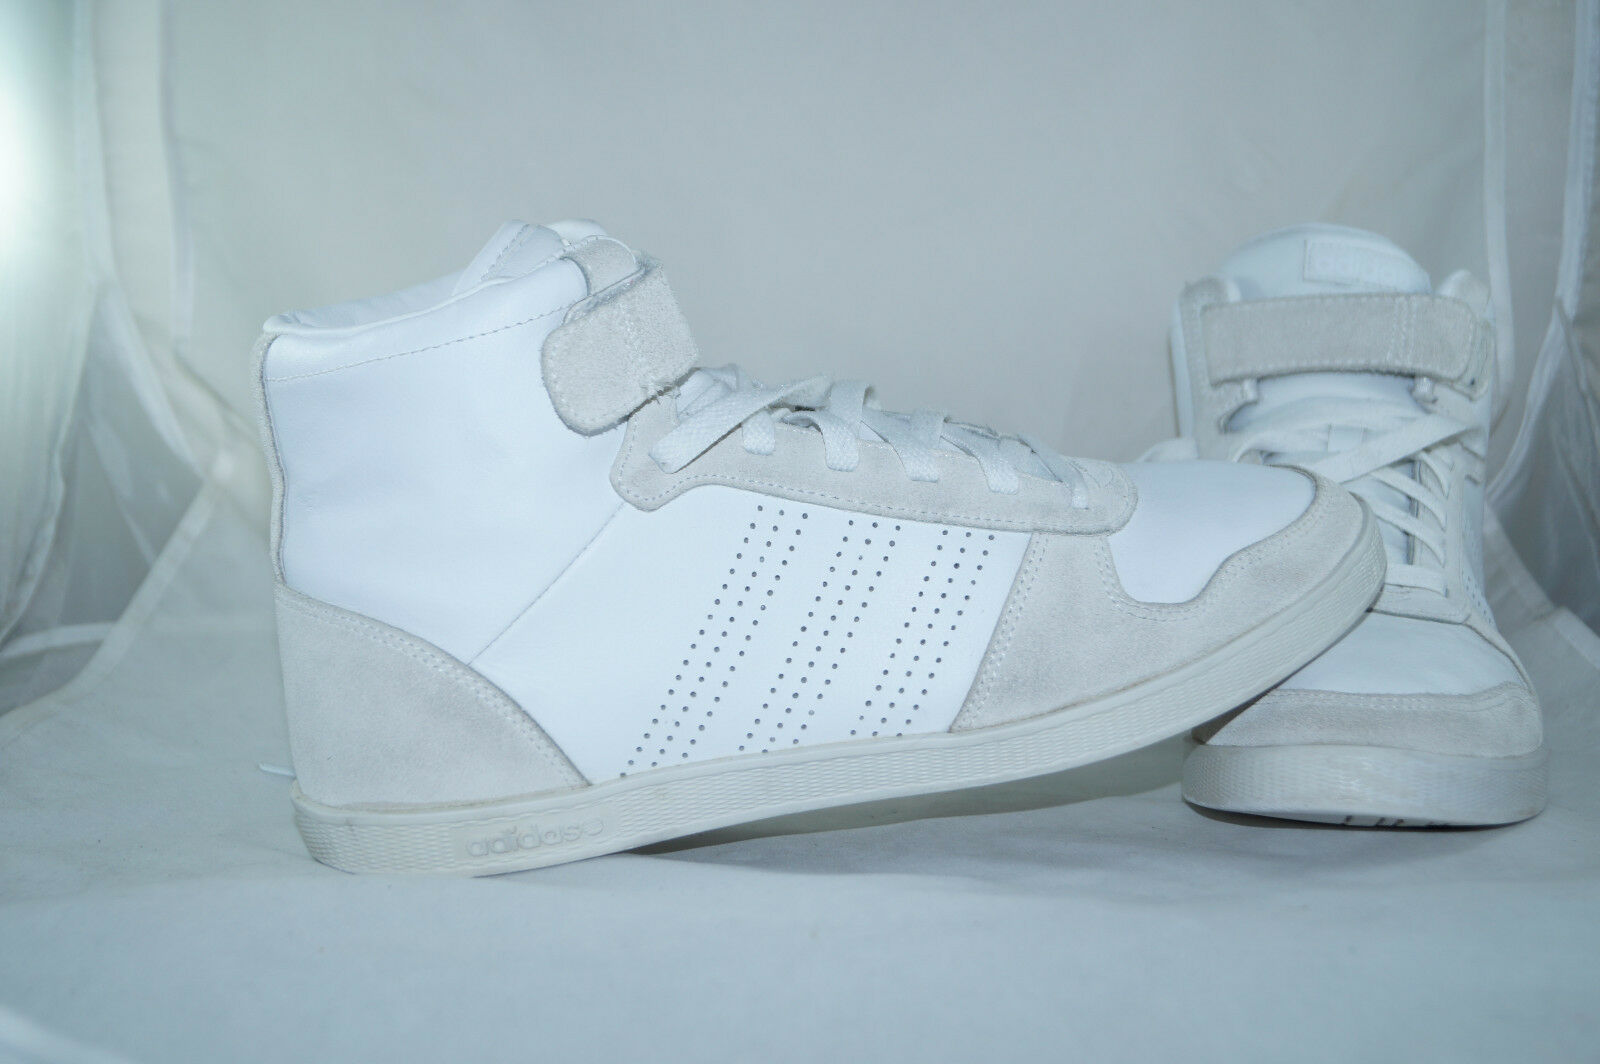 Adidas Neo BBPURE High Tops Weiss Trainers  Gr:43 1/3 Weiss